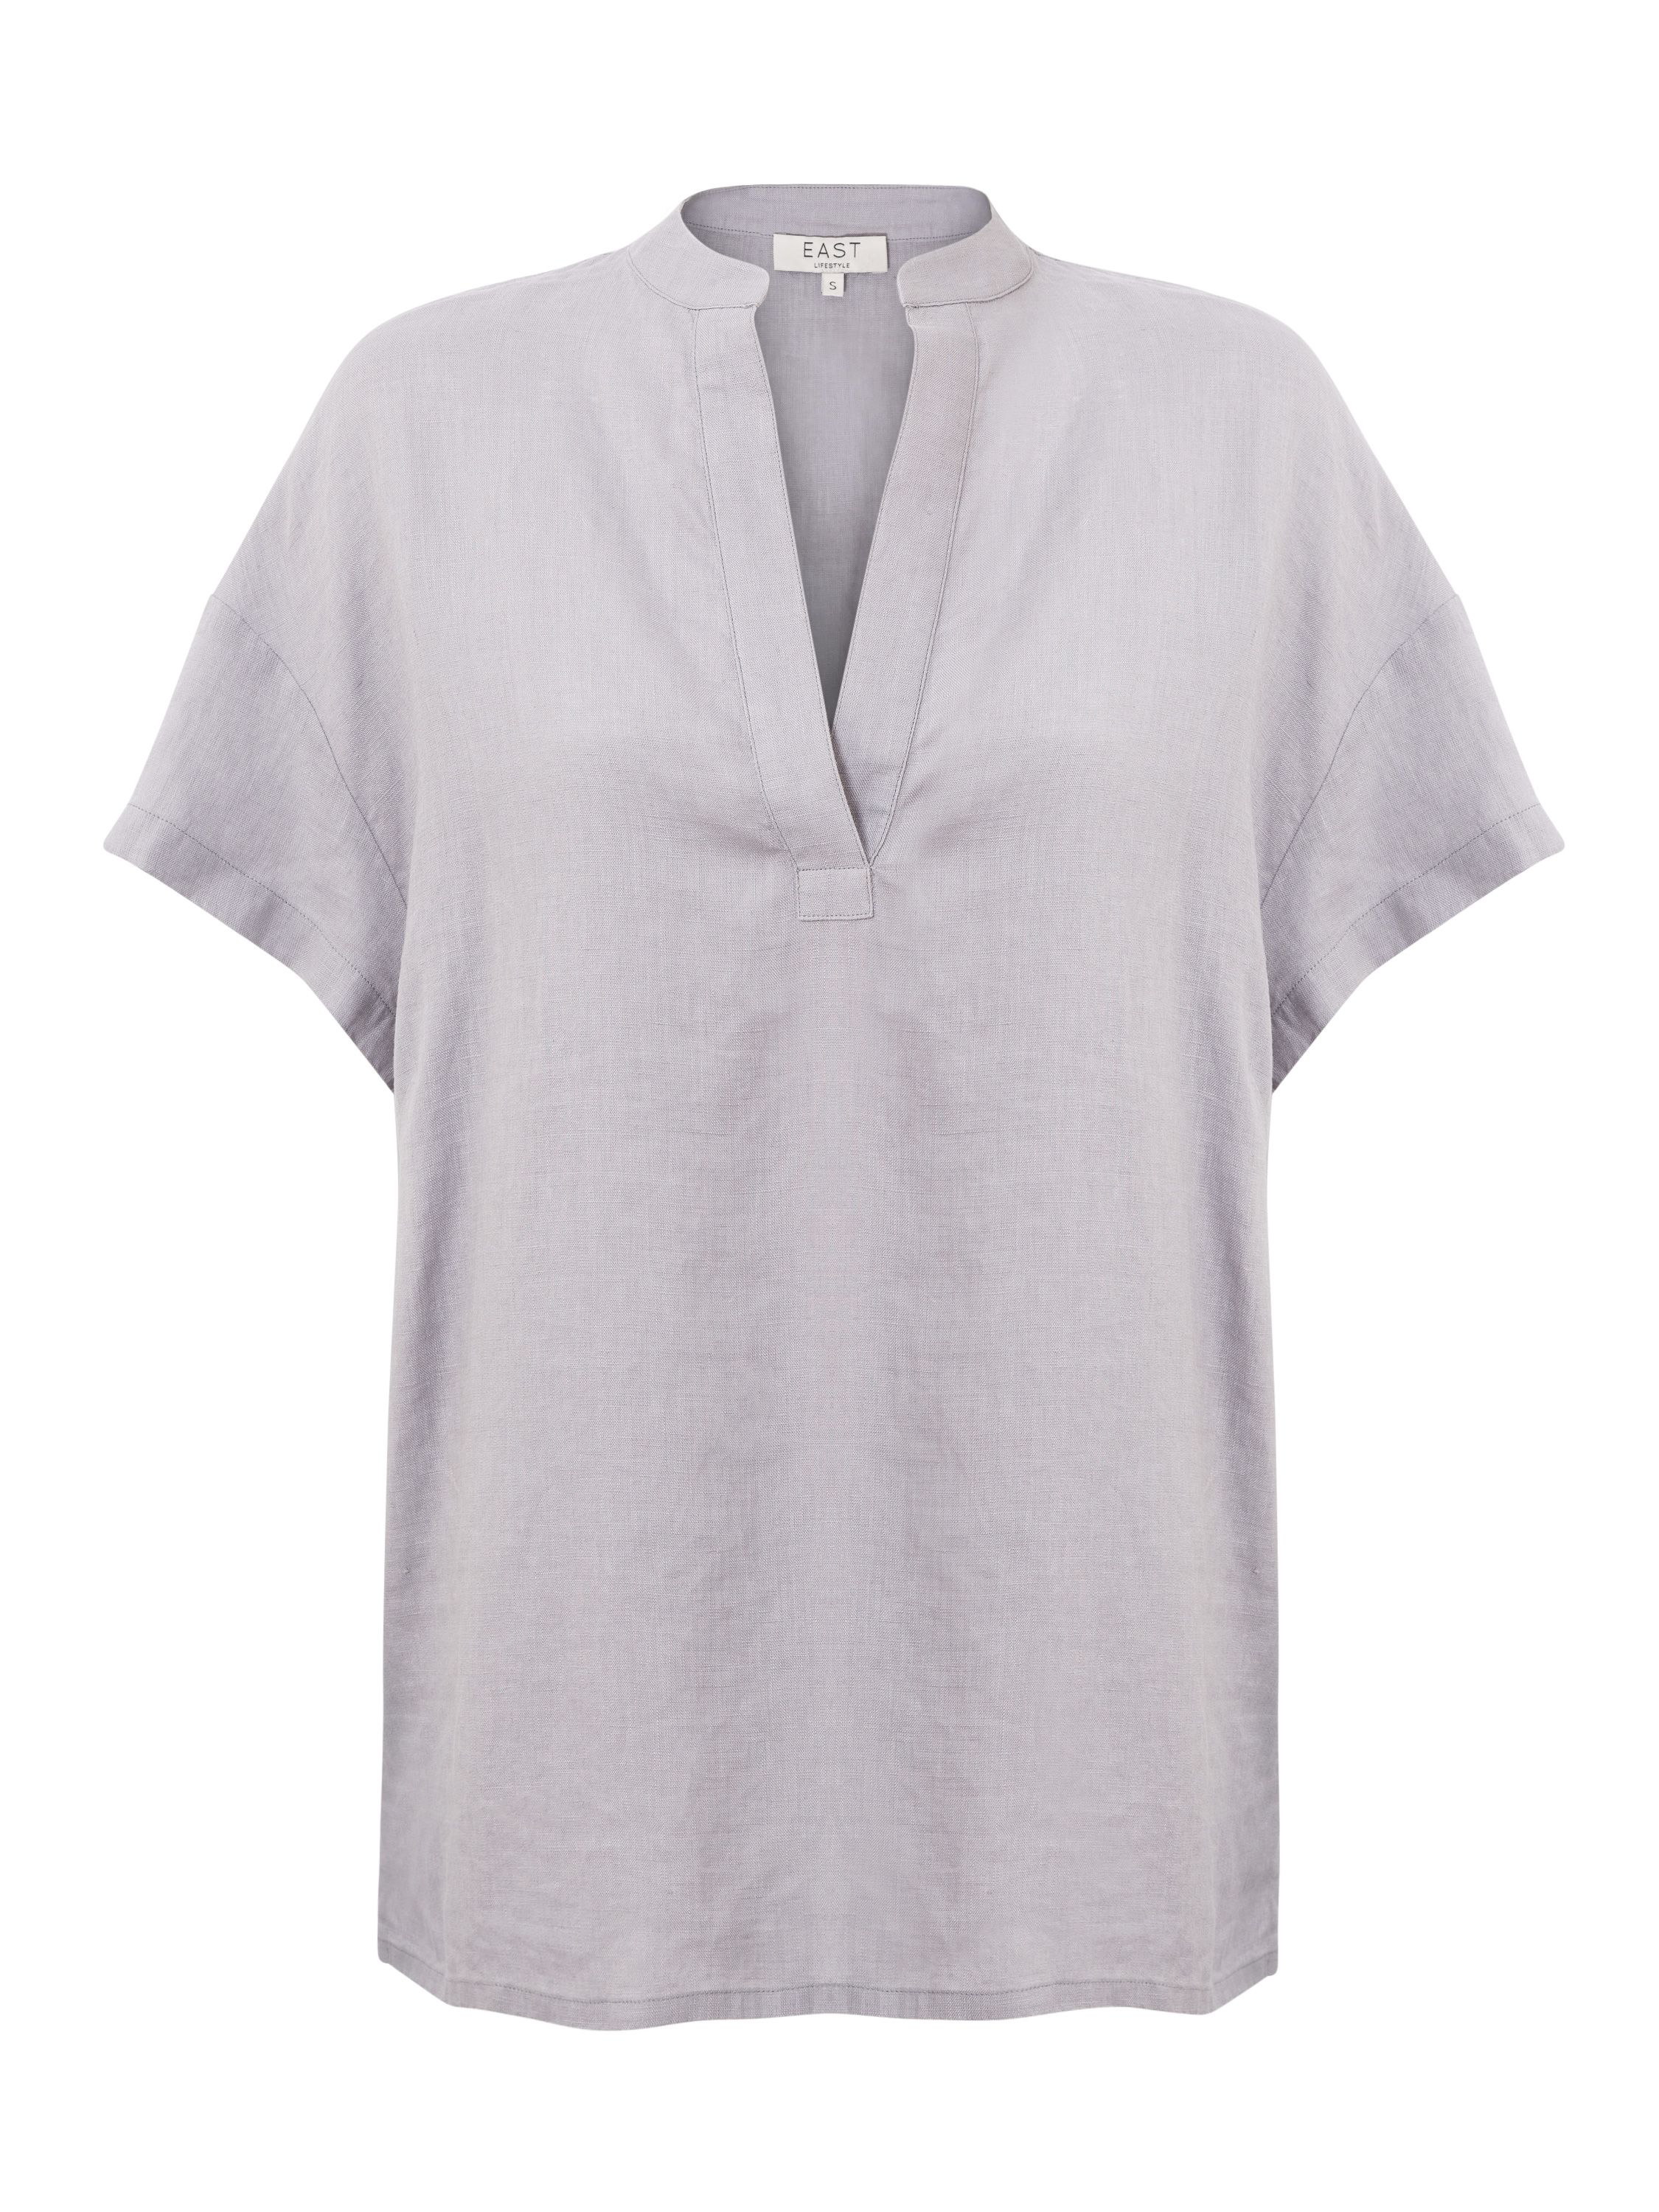 East Linen Marilyn Top, Grey